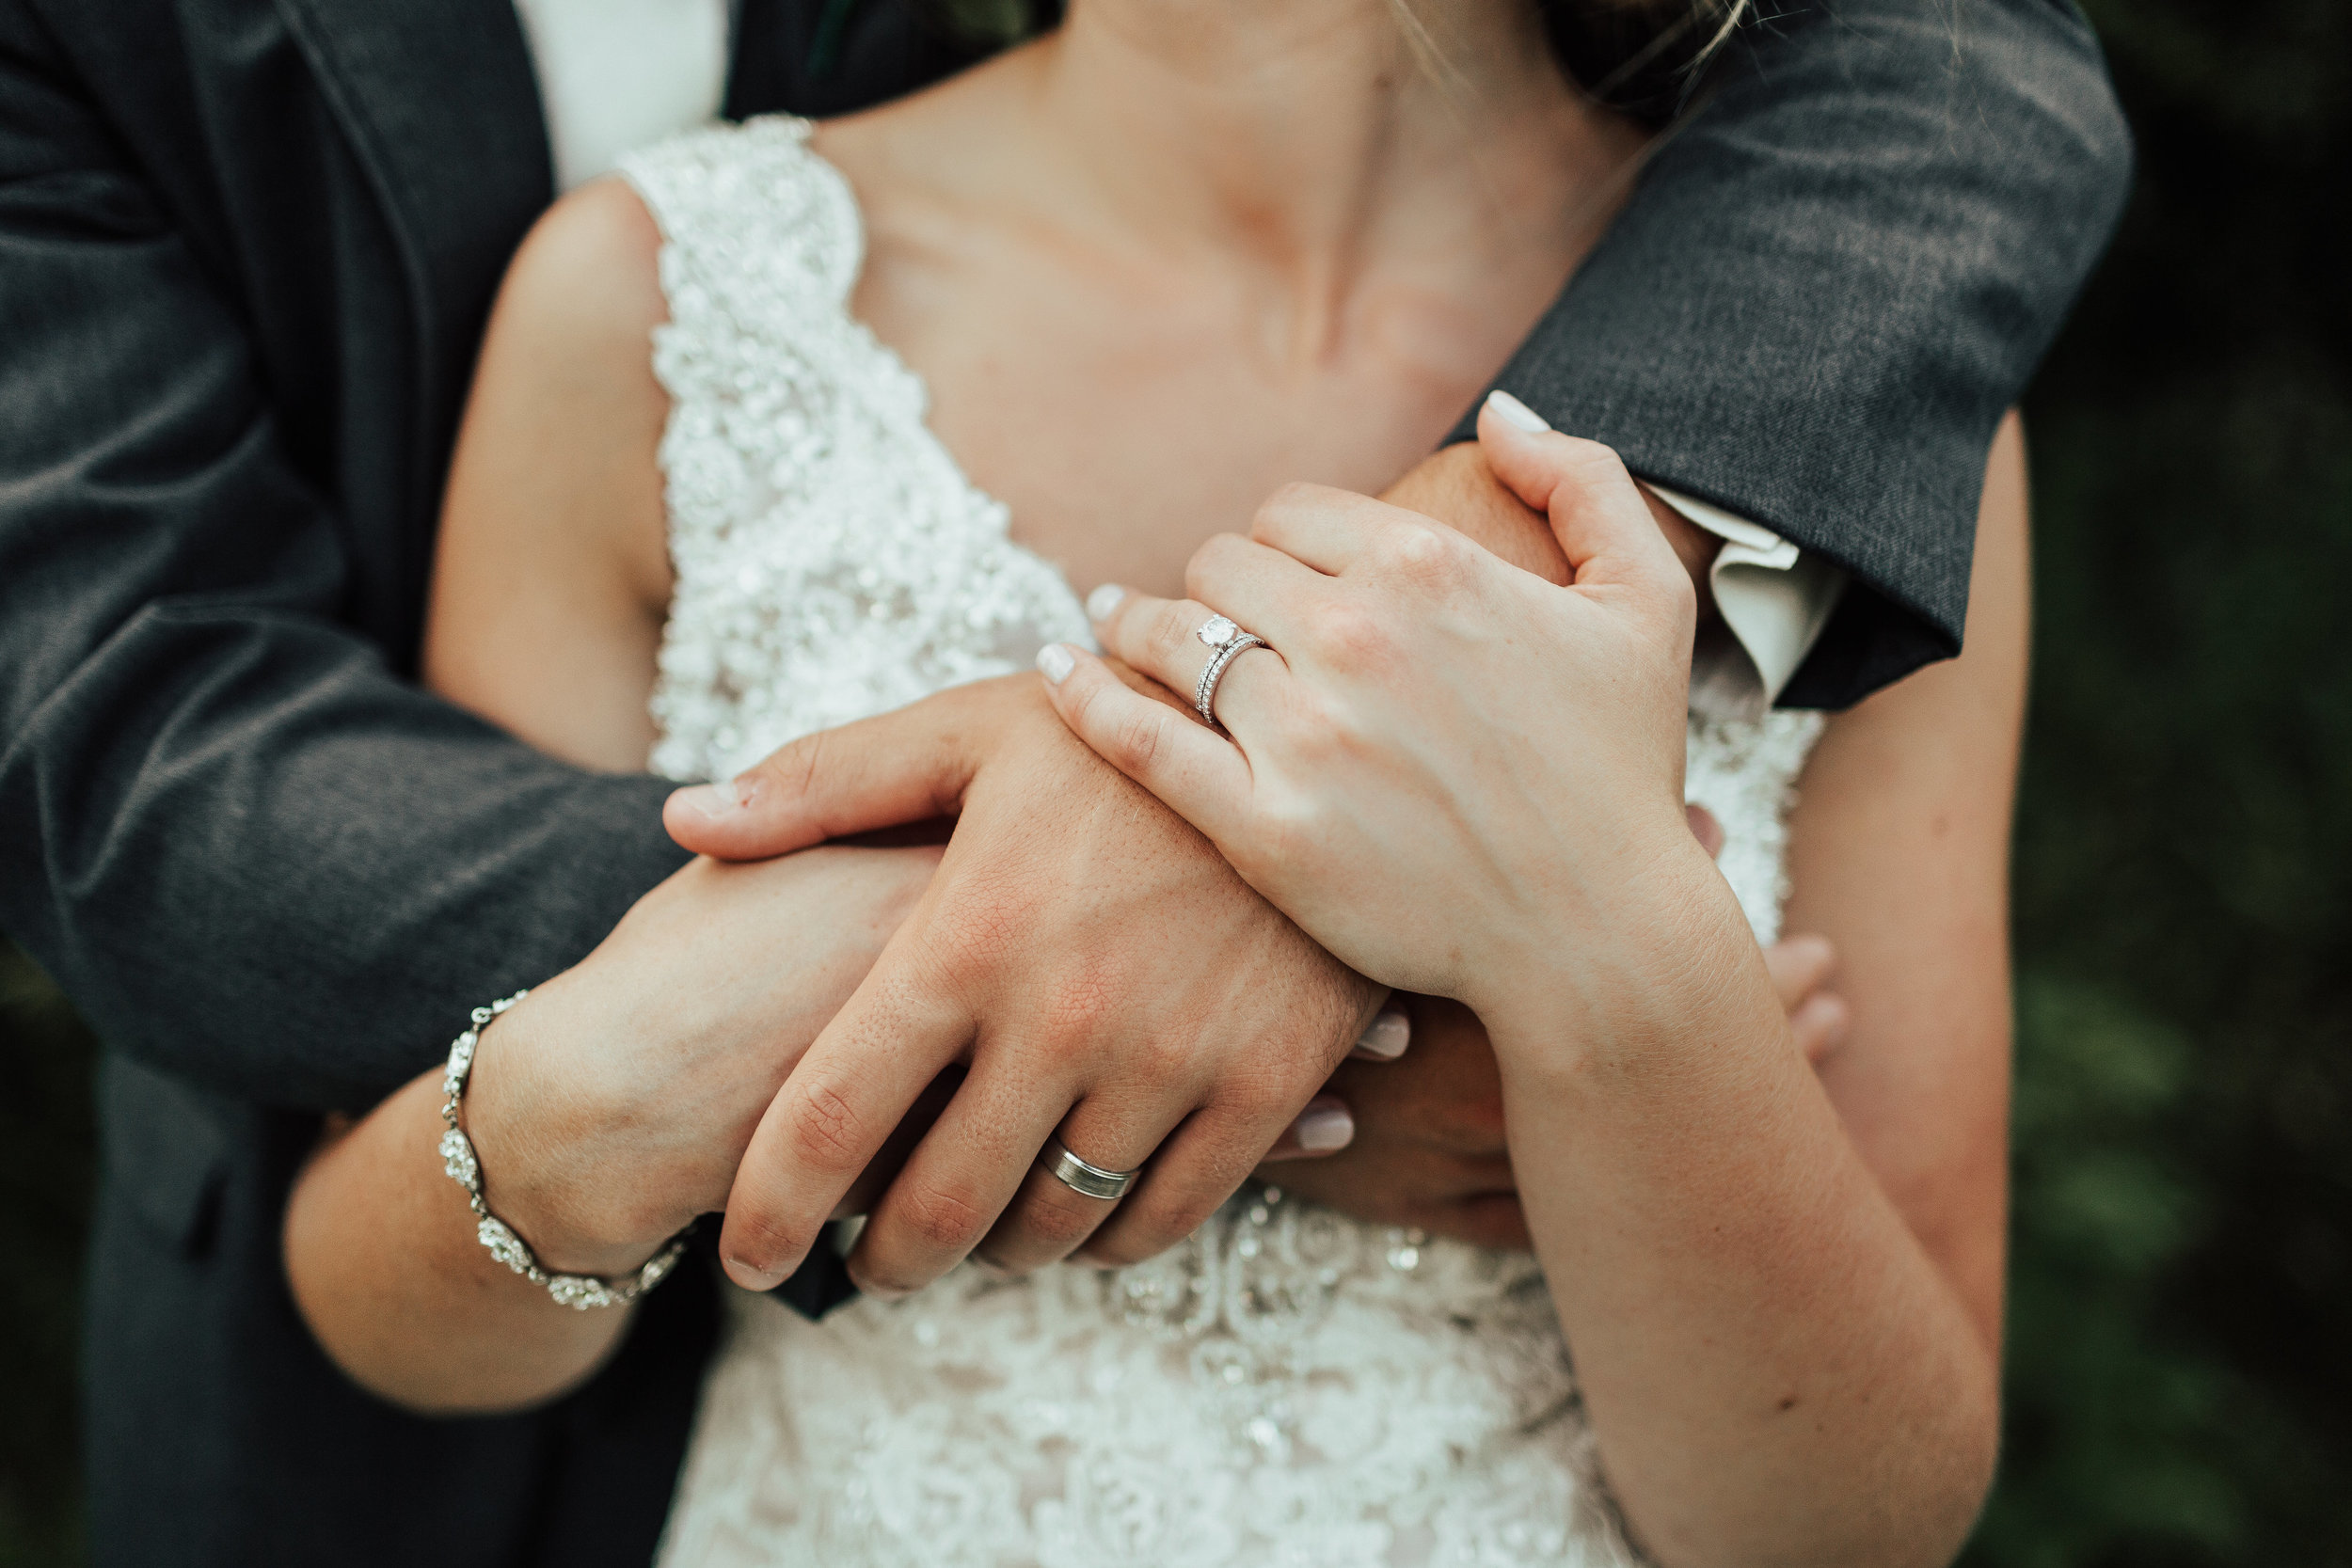 Josey Meeker stafford | Janelle Elise Photography | hug photo with rings and bracelet detail | gray suit for groom | Furber Farm